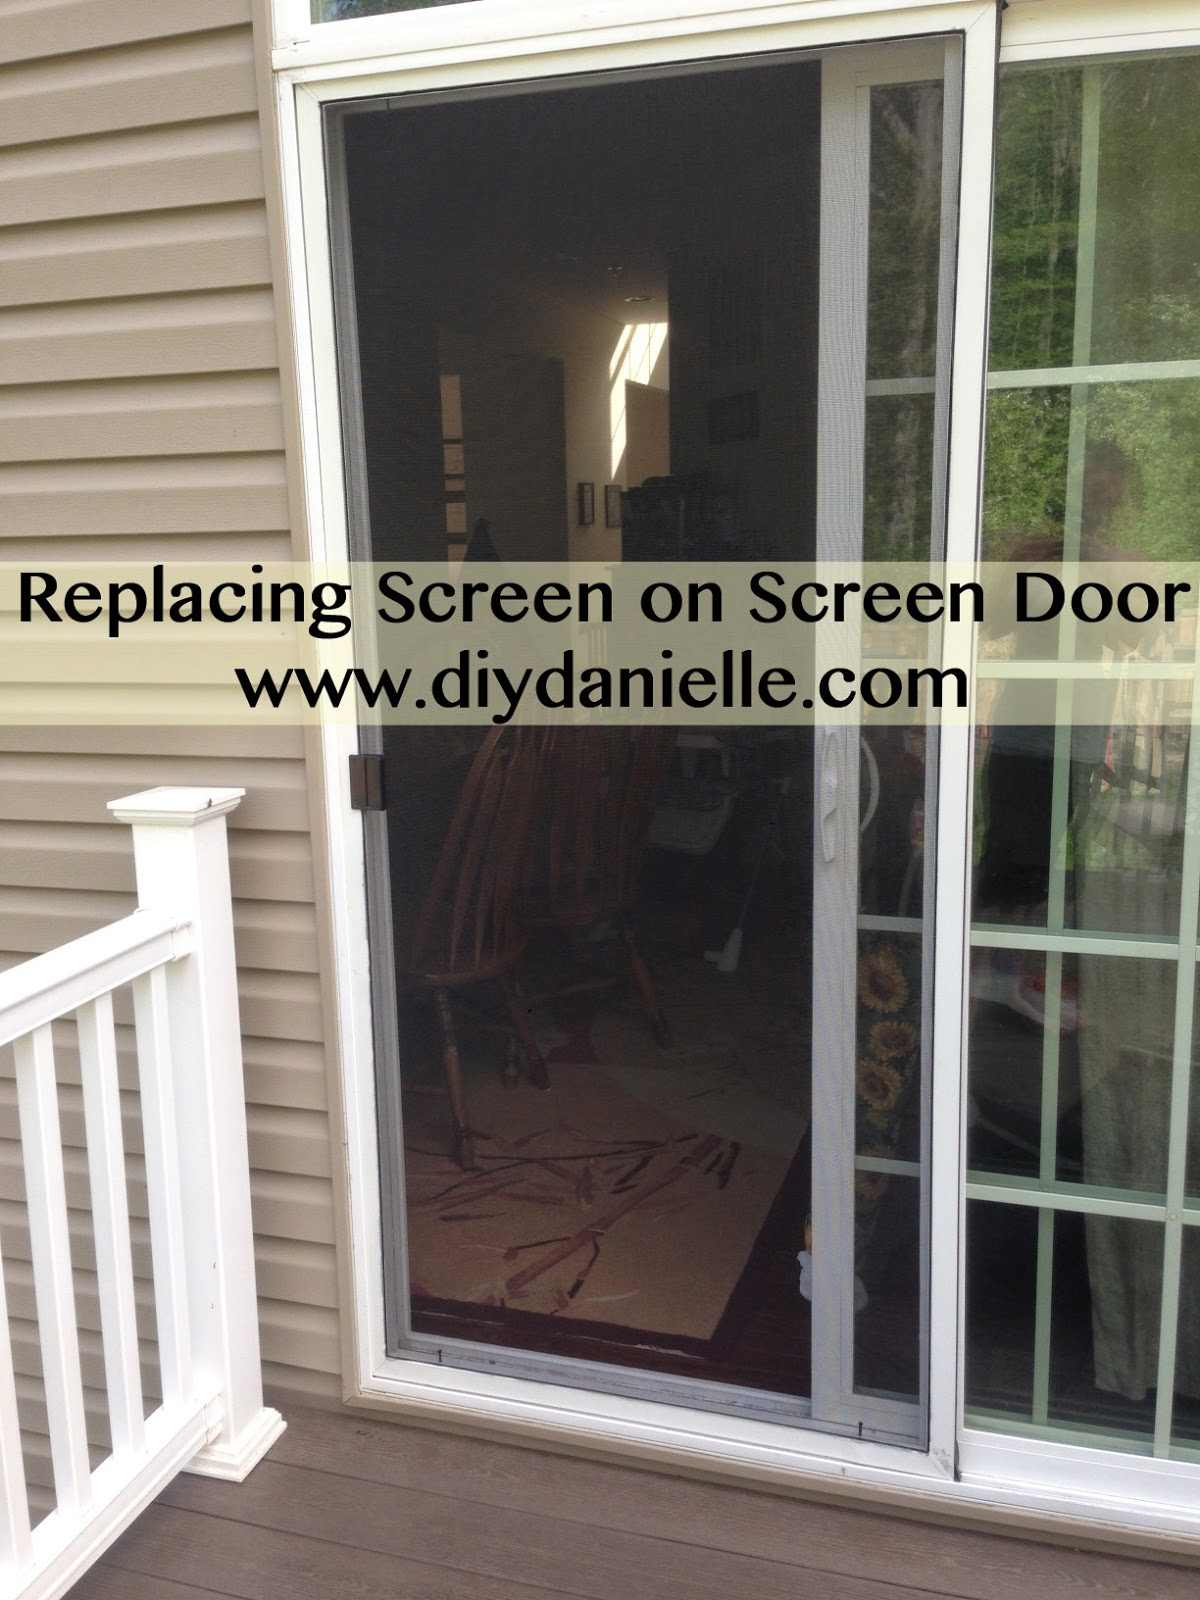 Easy Home DIY: Replacing Screen on Screen Door